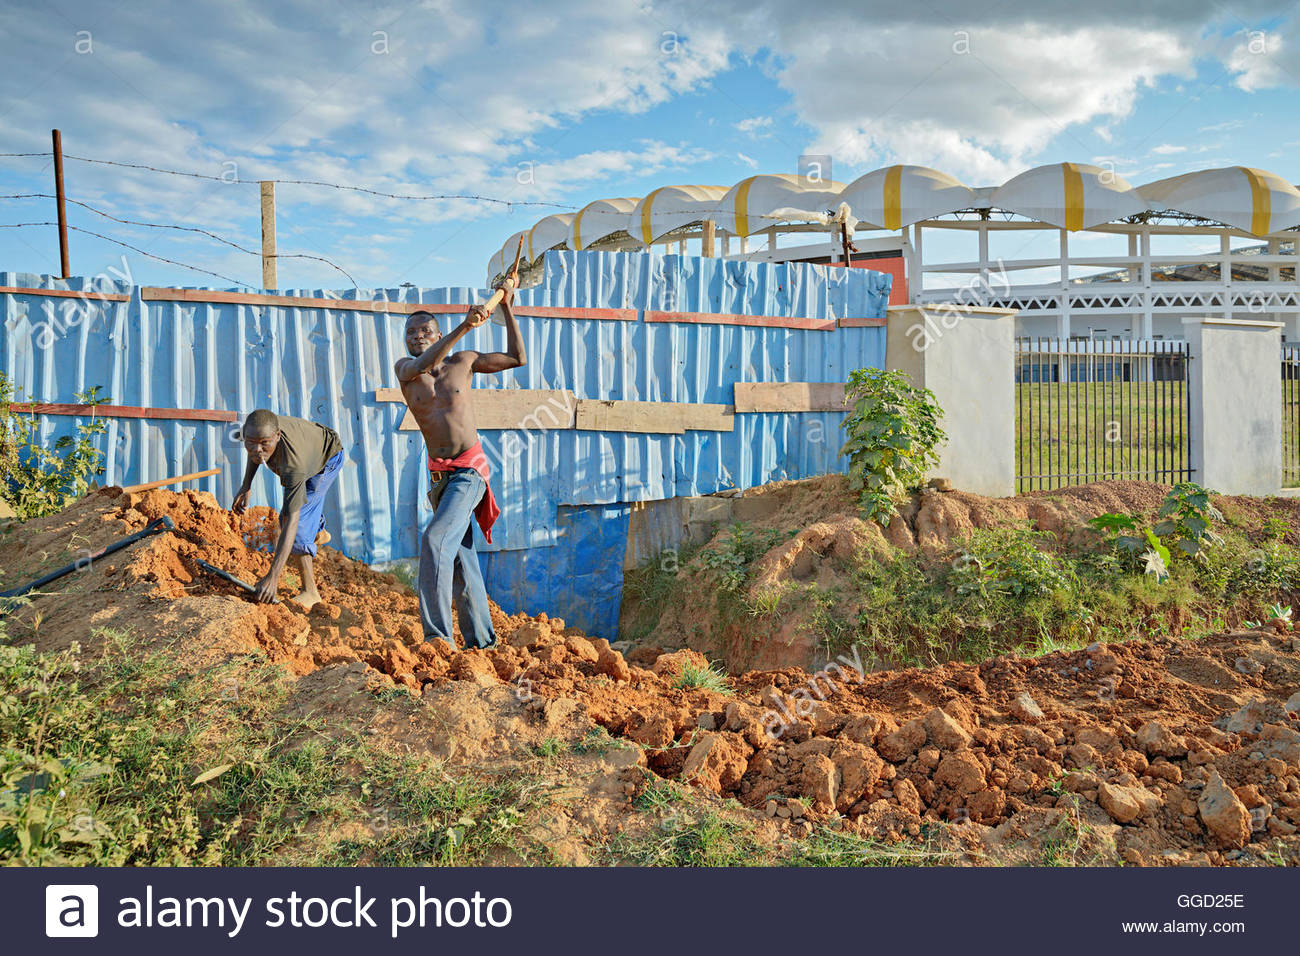 geography / travel, Zambia, Lusaka, Workers near the new Chinese-funded football stadium in Lusaka, the capital - Stock Image